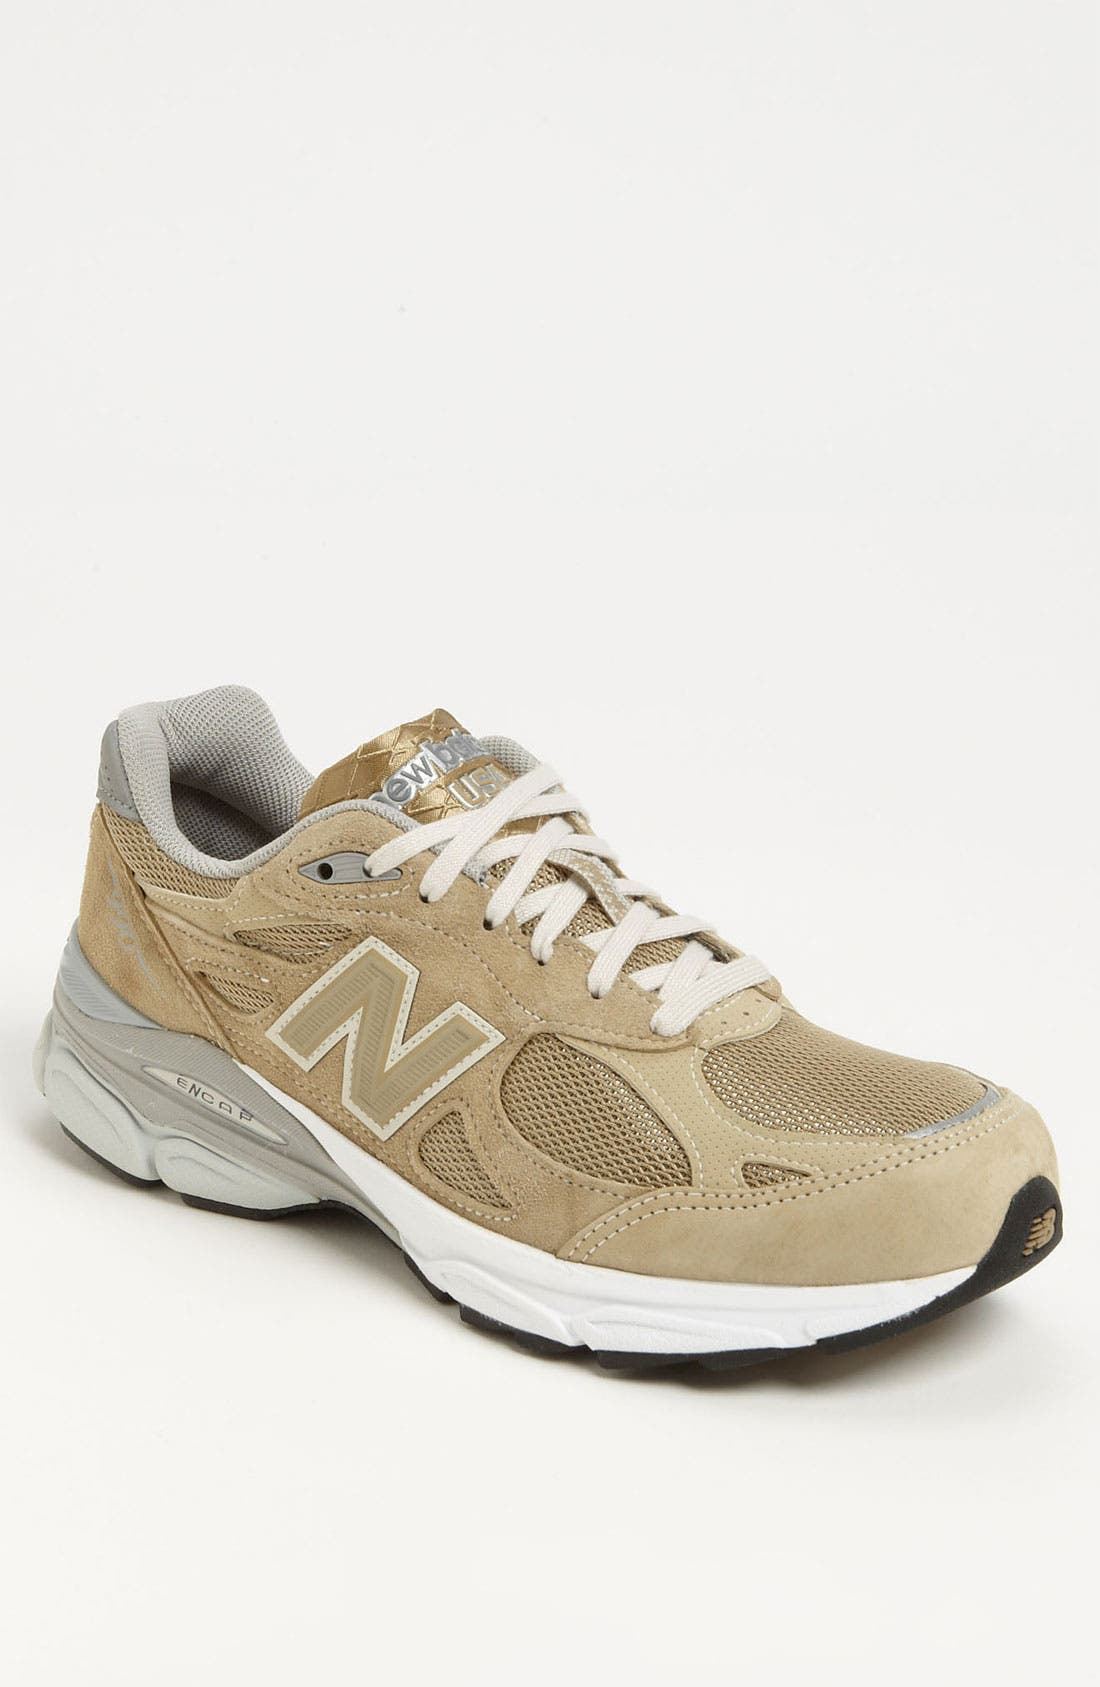 NEW BALANCE '990' Running Shoe, Main, color, 268